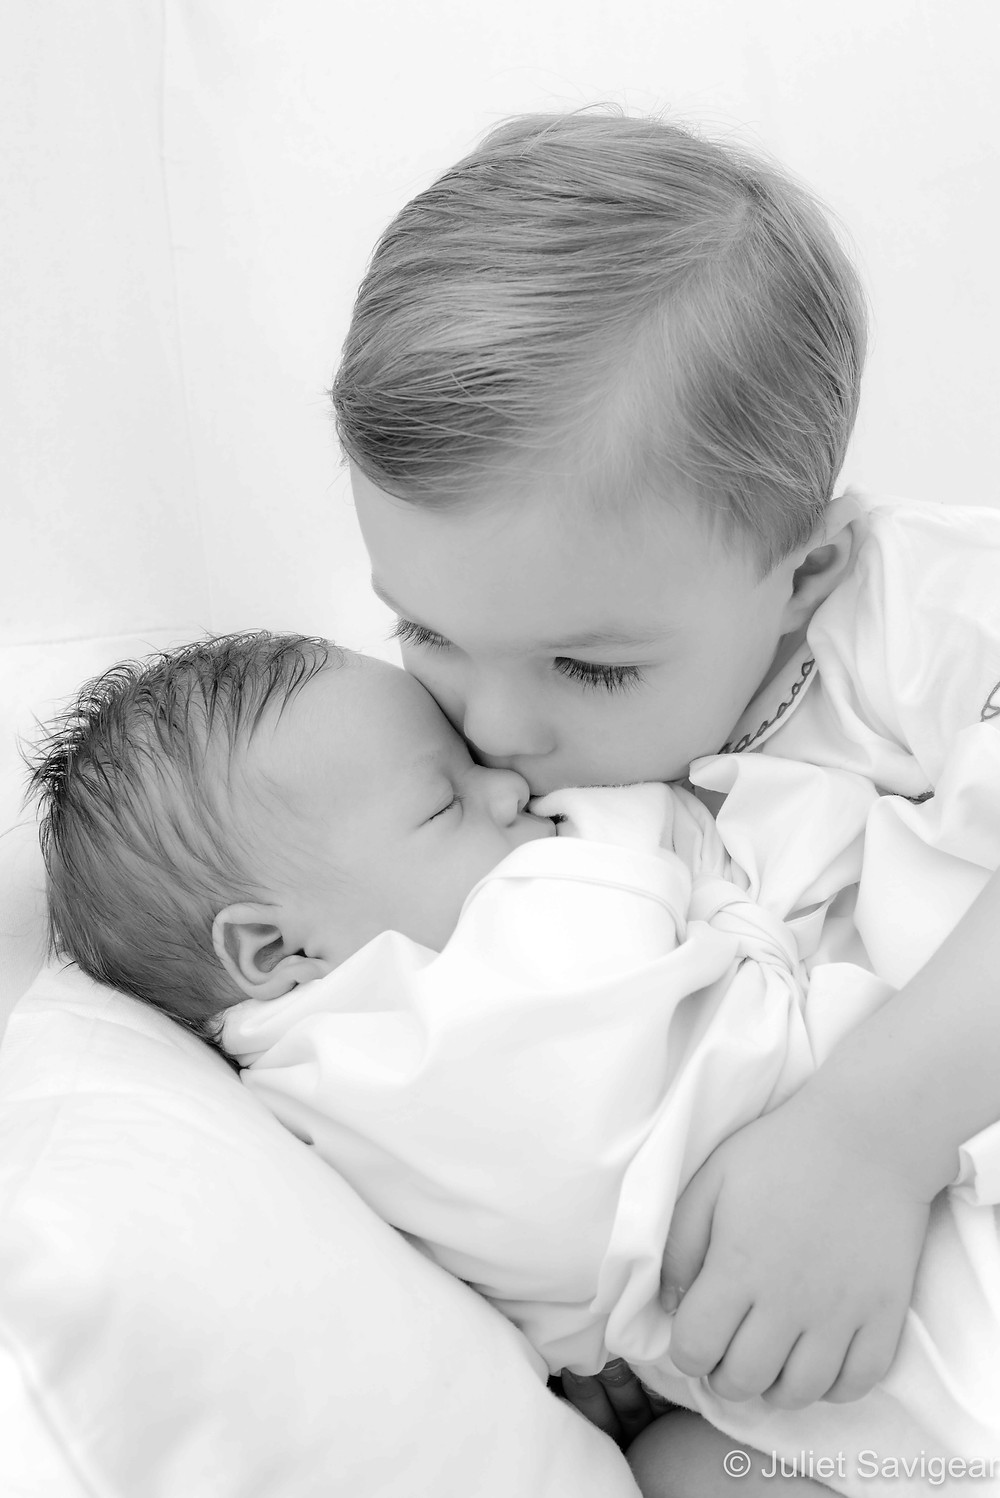 Kisses for newborn brother